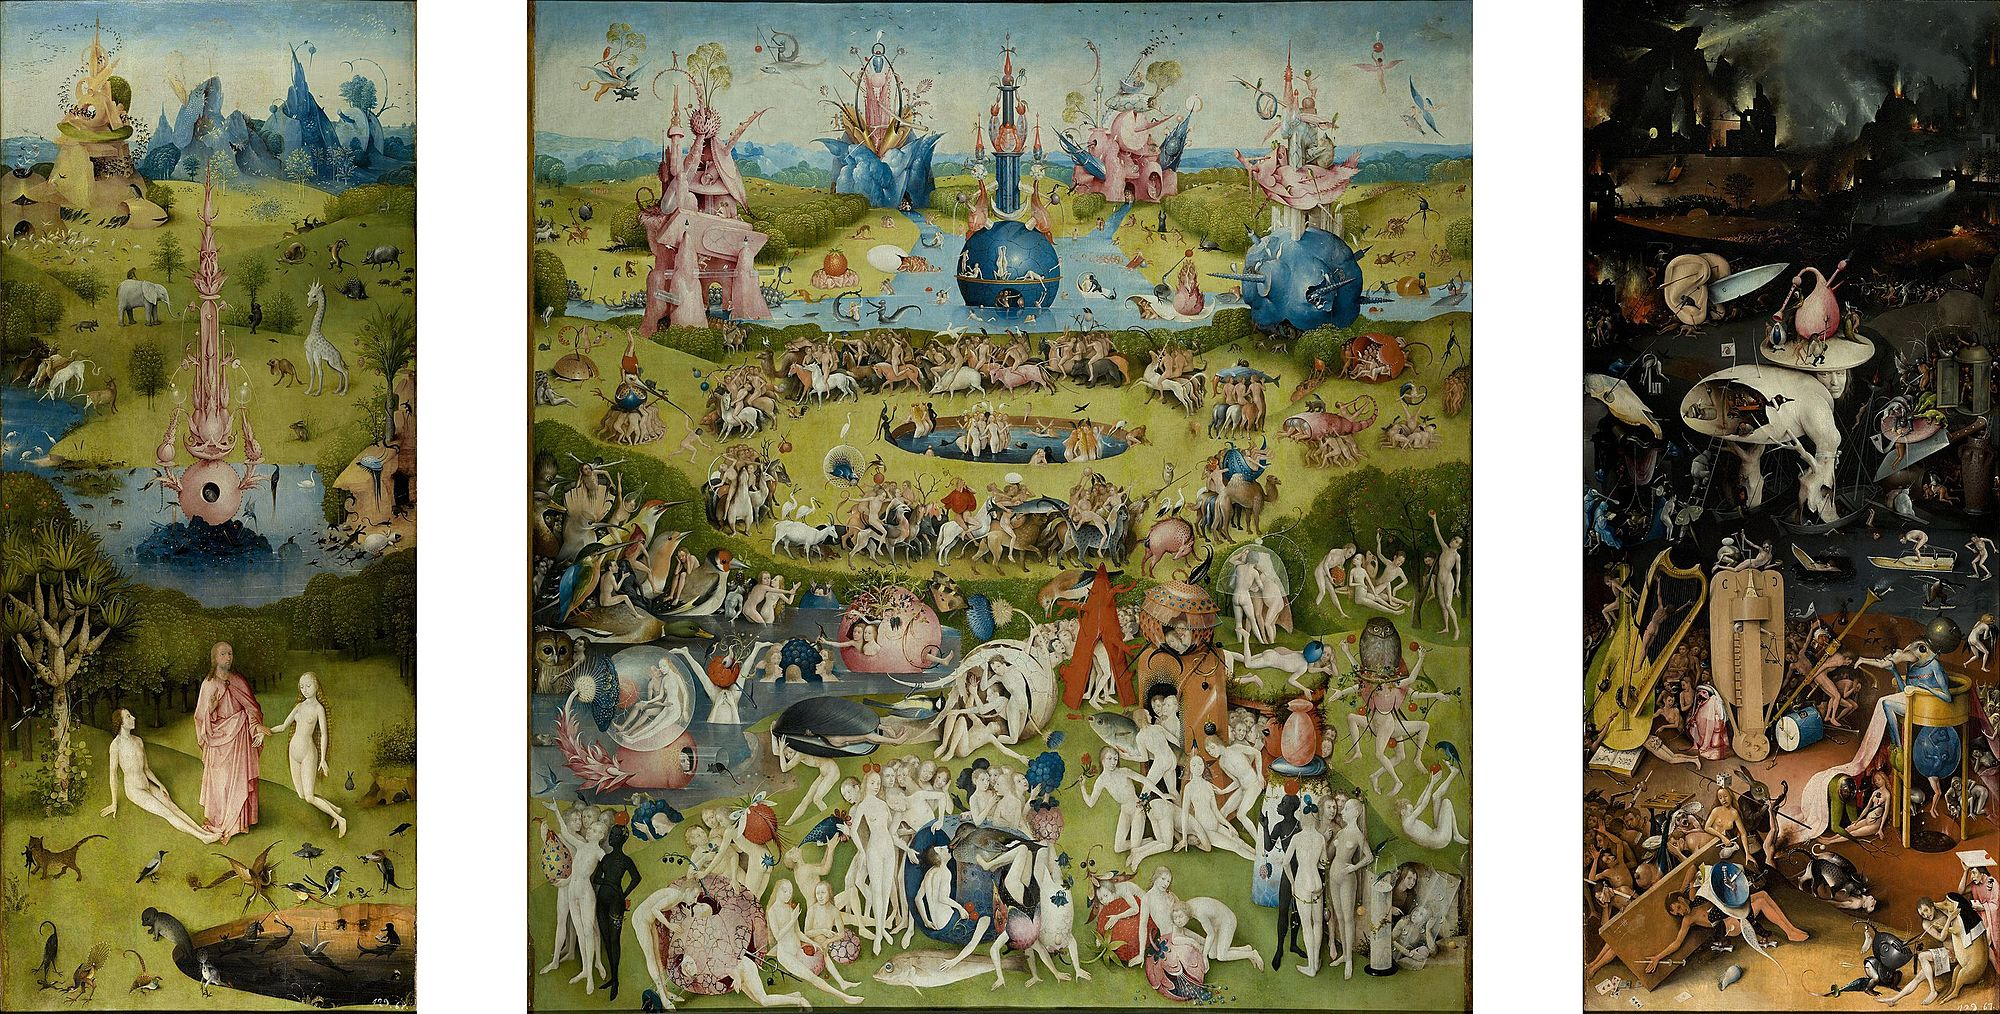 bosch the garden of earthly delights. The Garden Of Earthly Delights [Hieronymus Bosch] Bosch